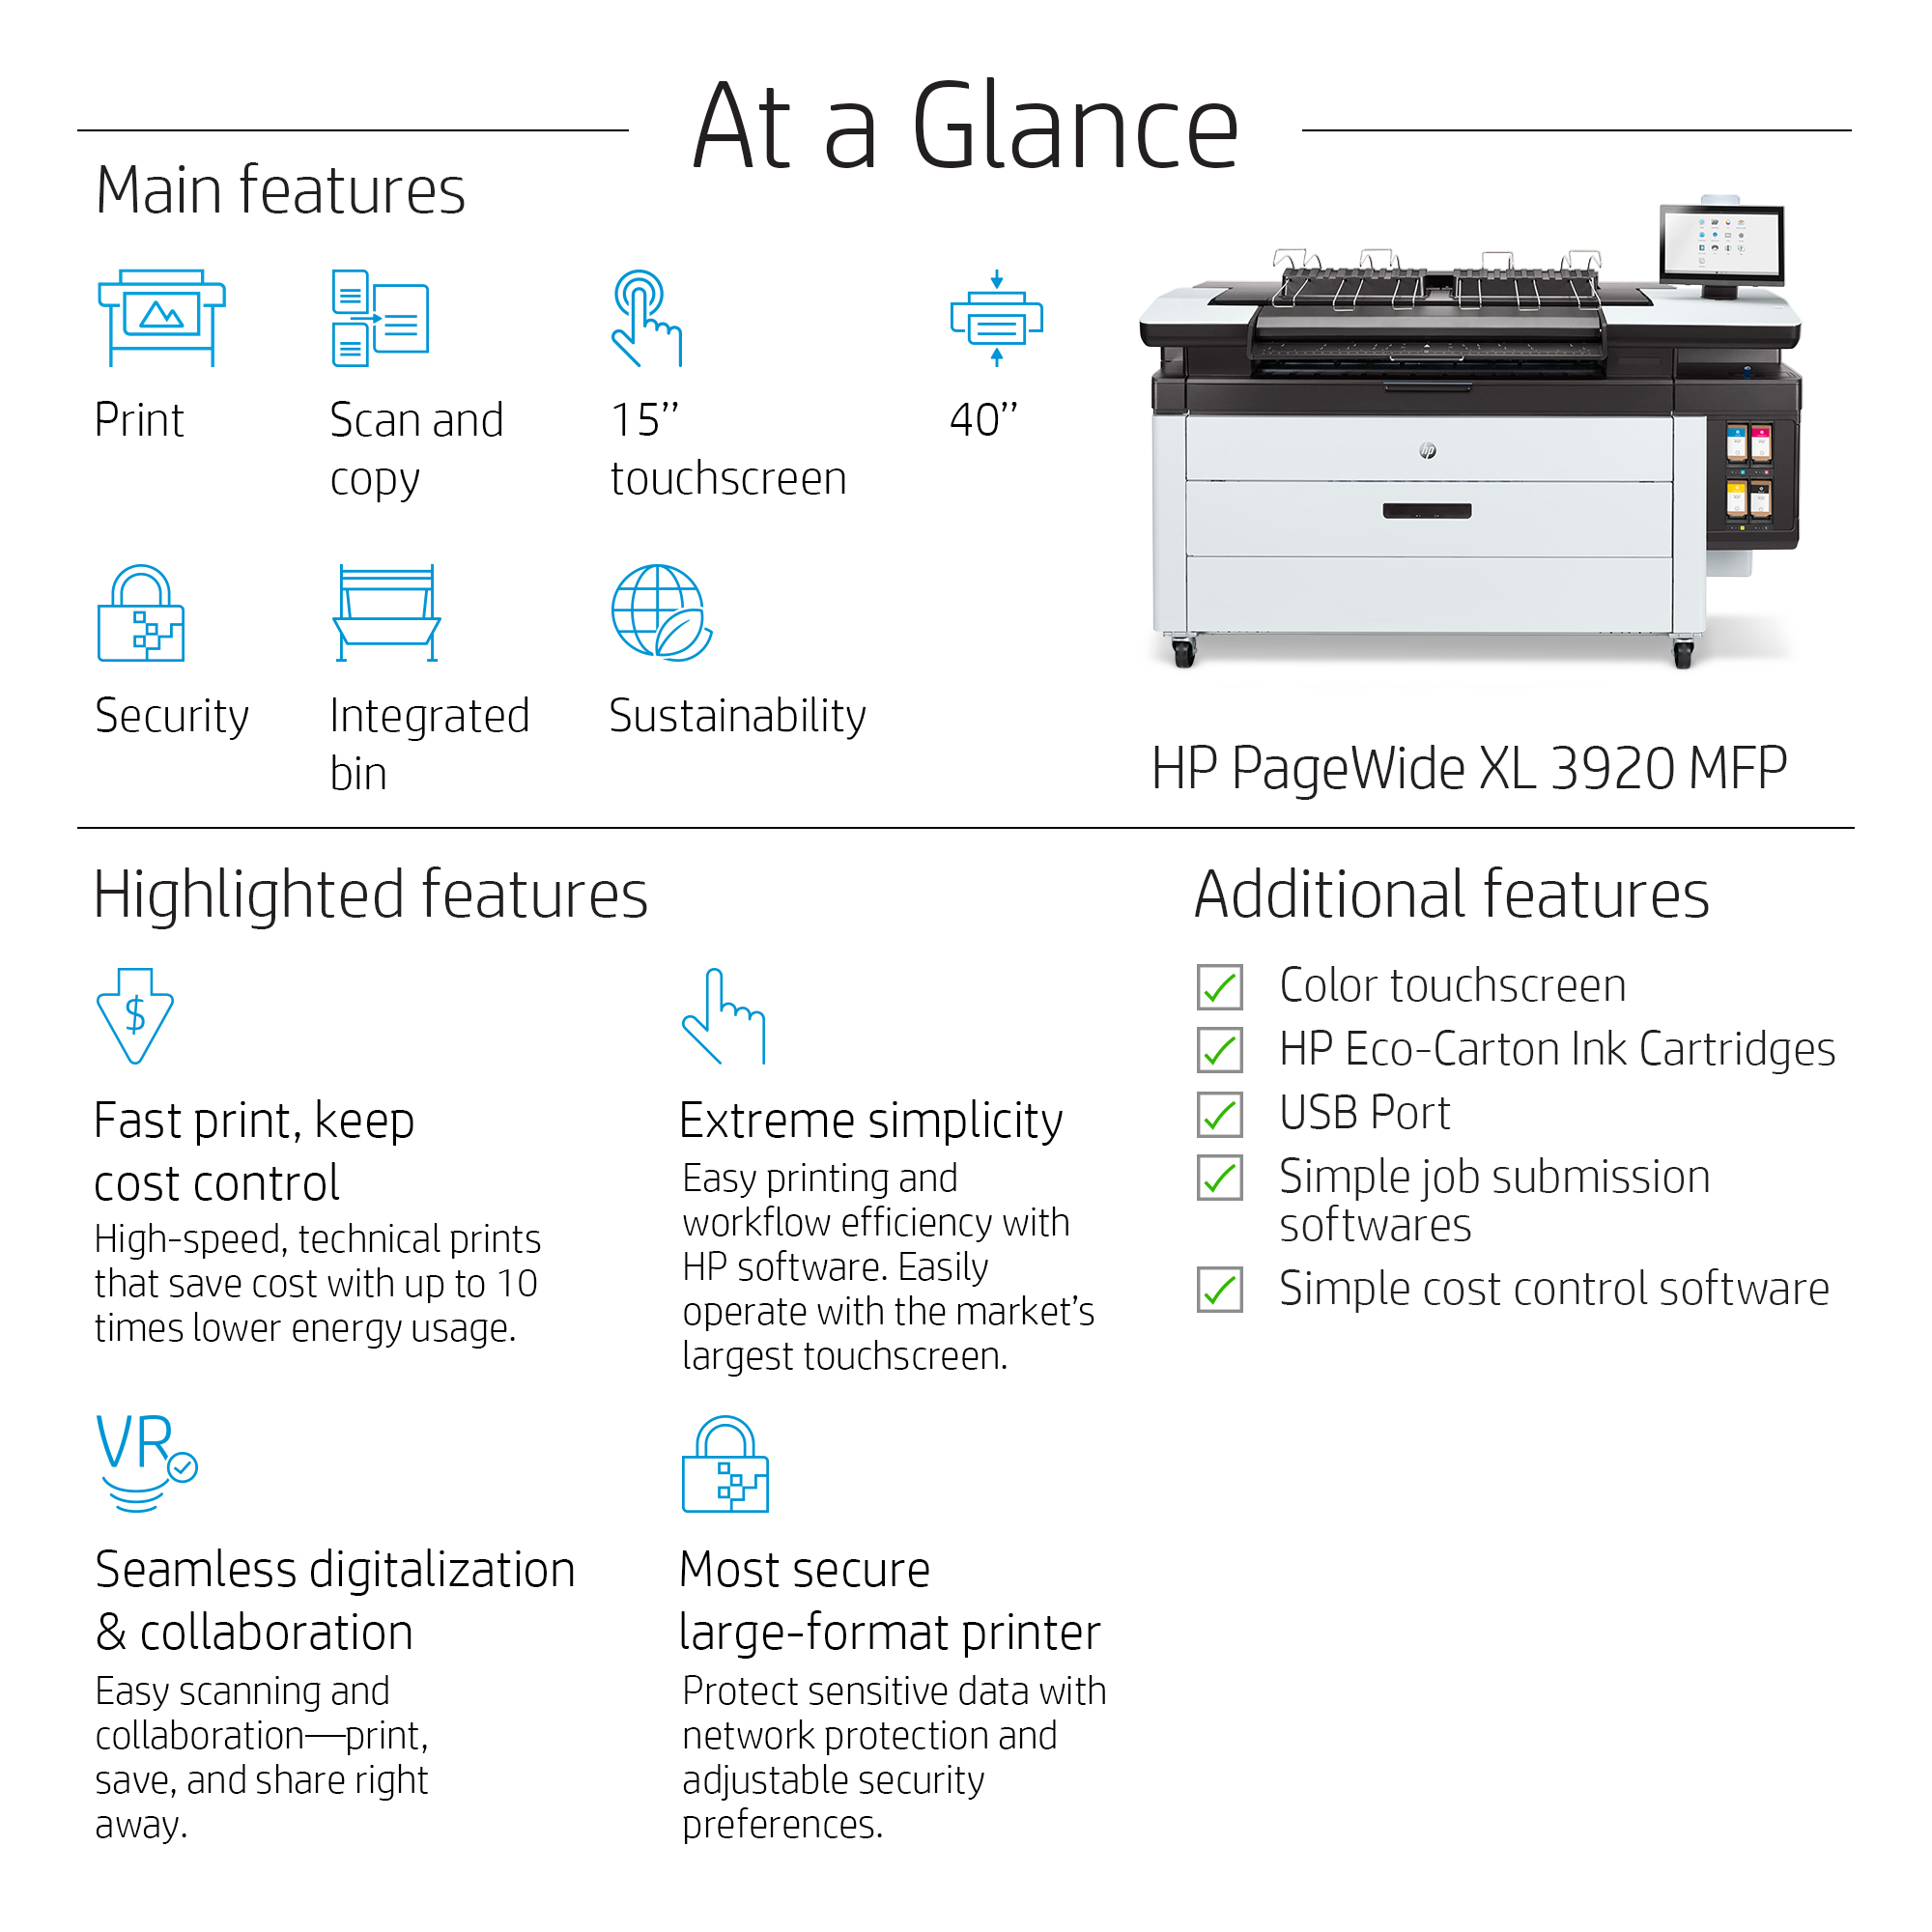 HP_PageWide_XL_3920_MFP_At_a_glance